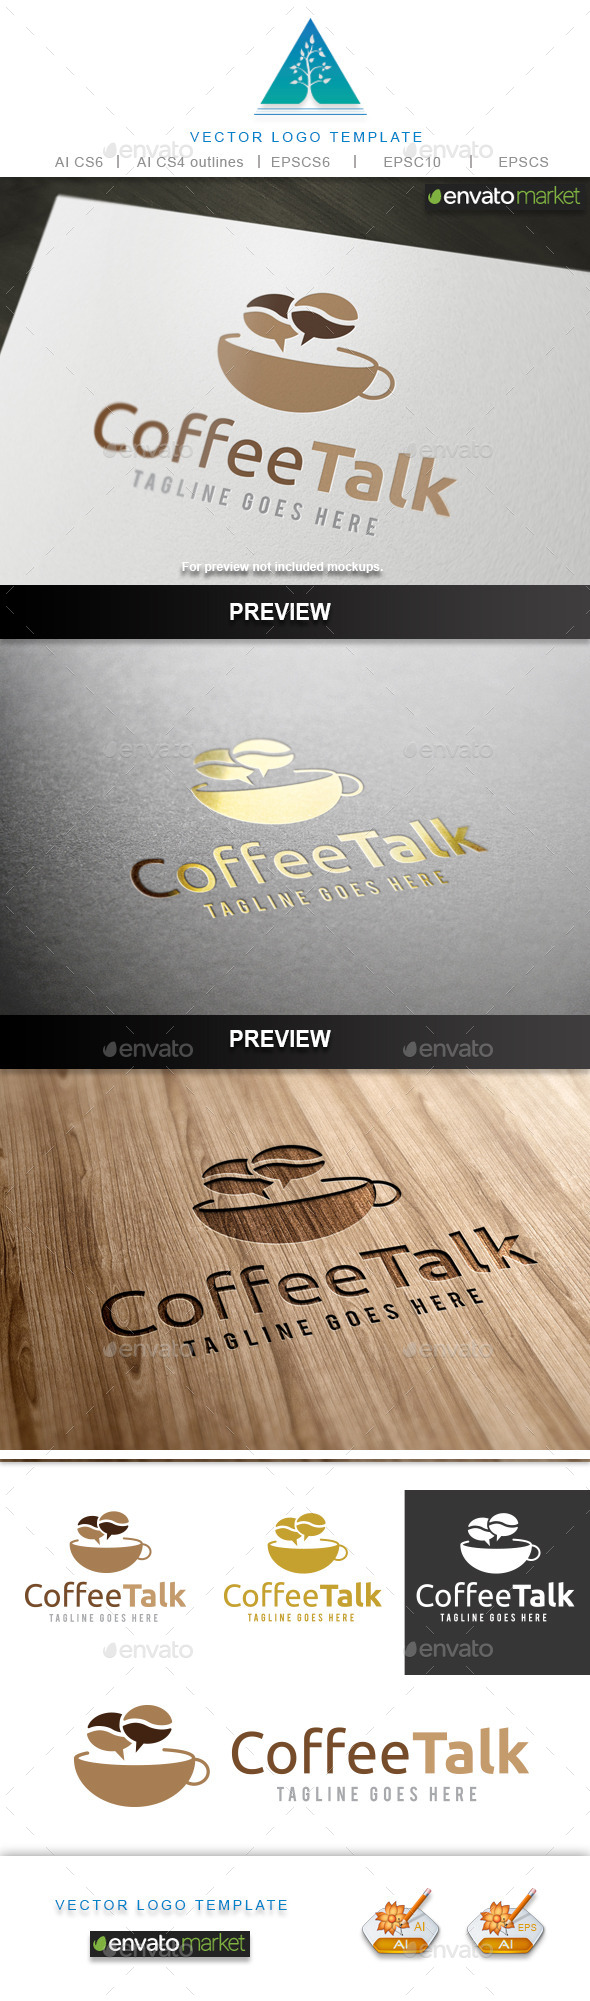 Coffee Talk 2 Logo